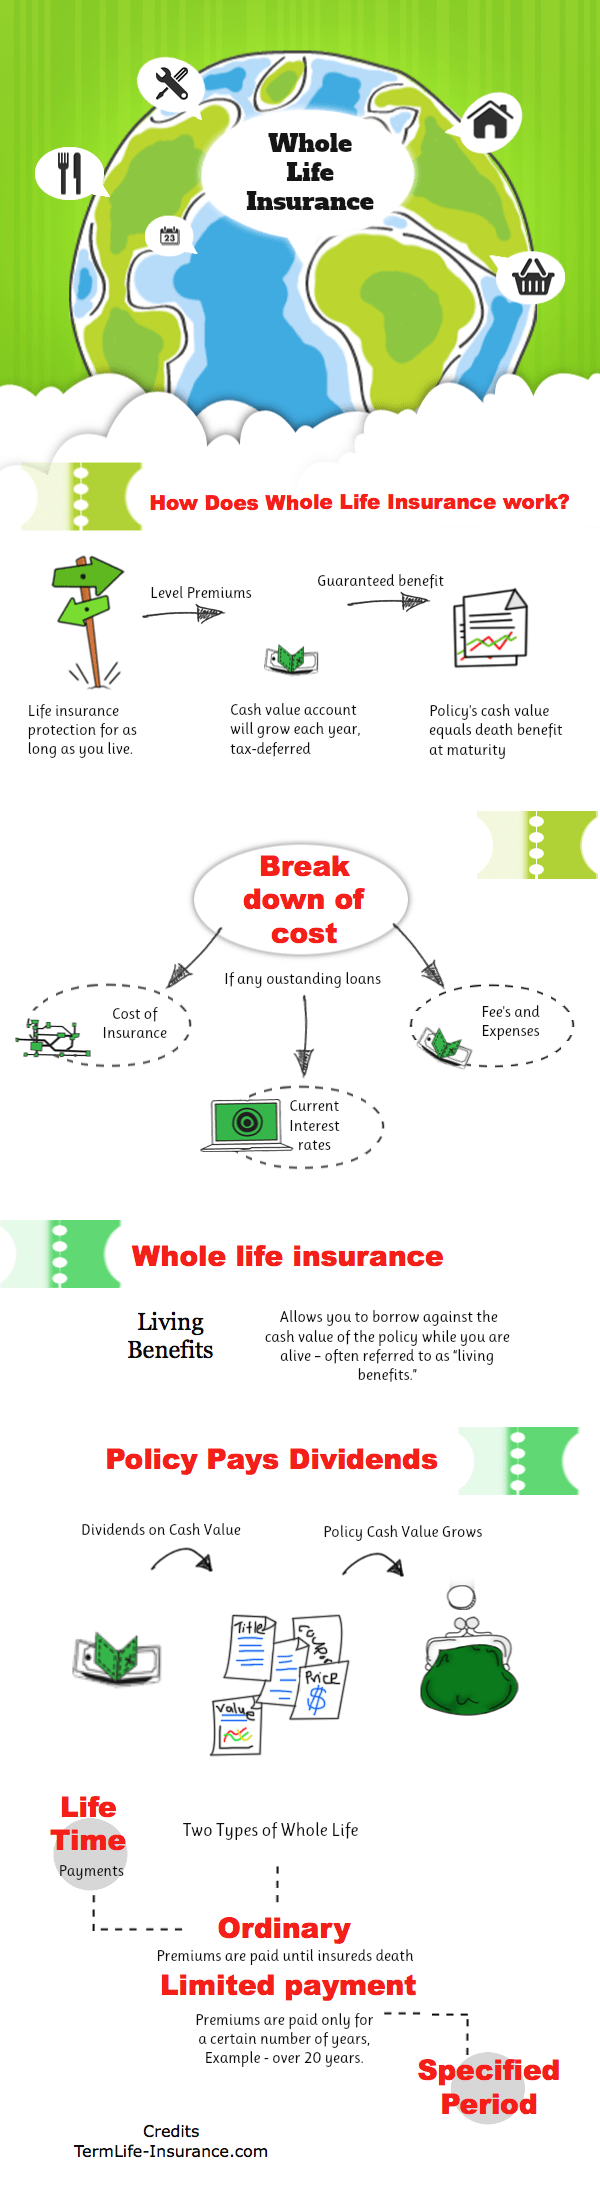 Whole Life Insurance Quote Best Instant Whole Life Insurance Quotesup To $100000 In Coverage.